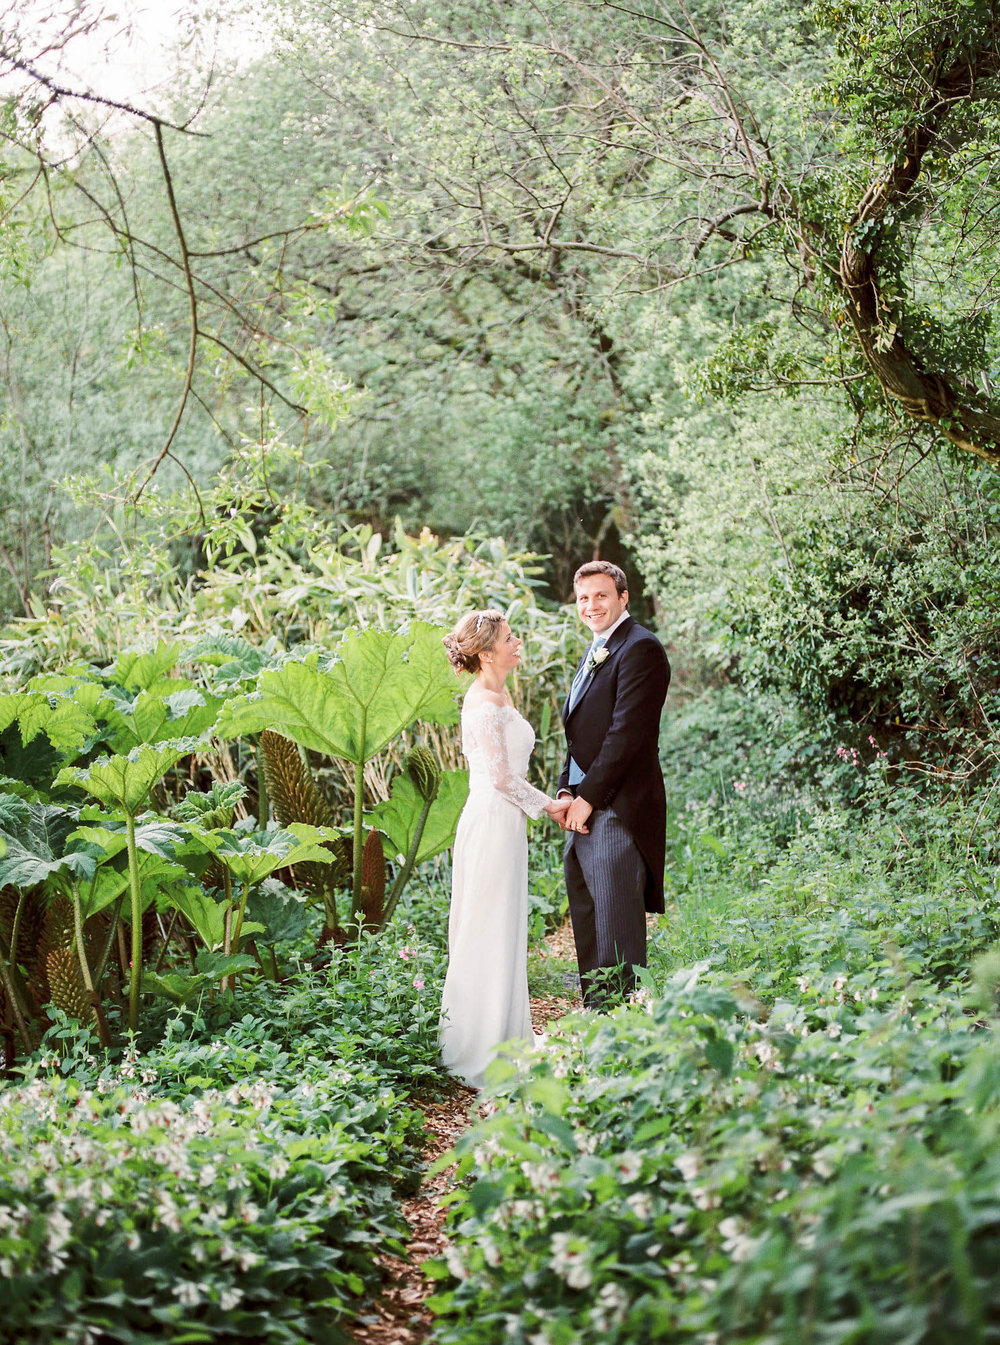 Amy O'Boyle Photography- Destination & UK Fine Art Film Wedding Photographer- English Countryside Wedding-12.jpg